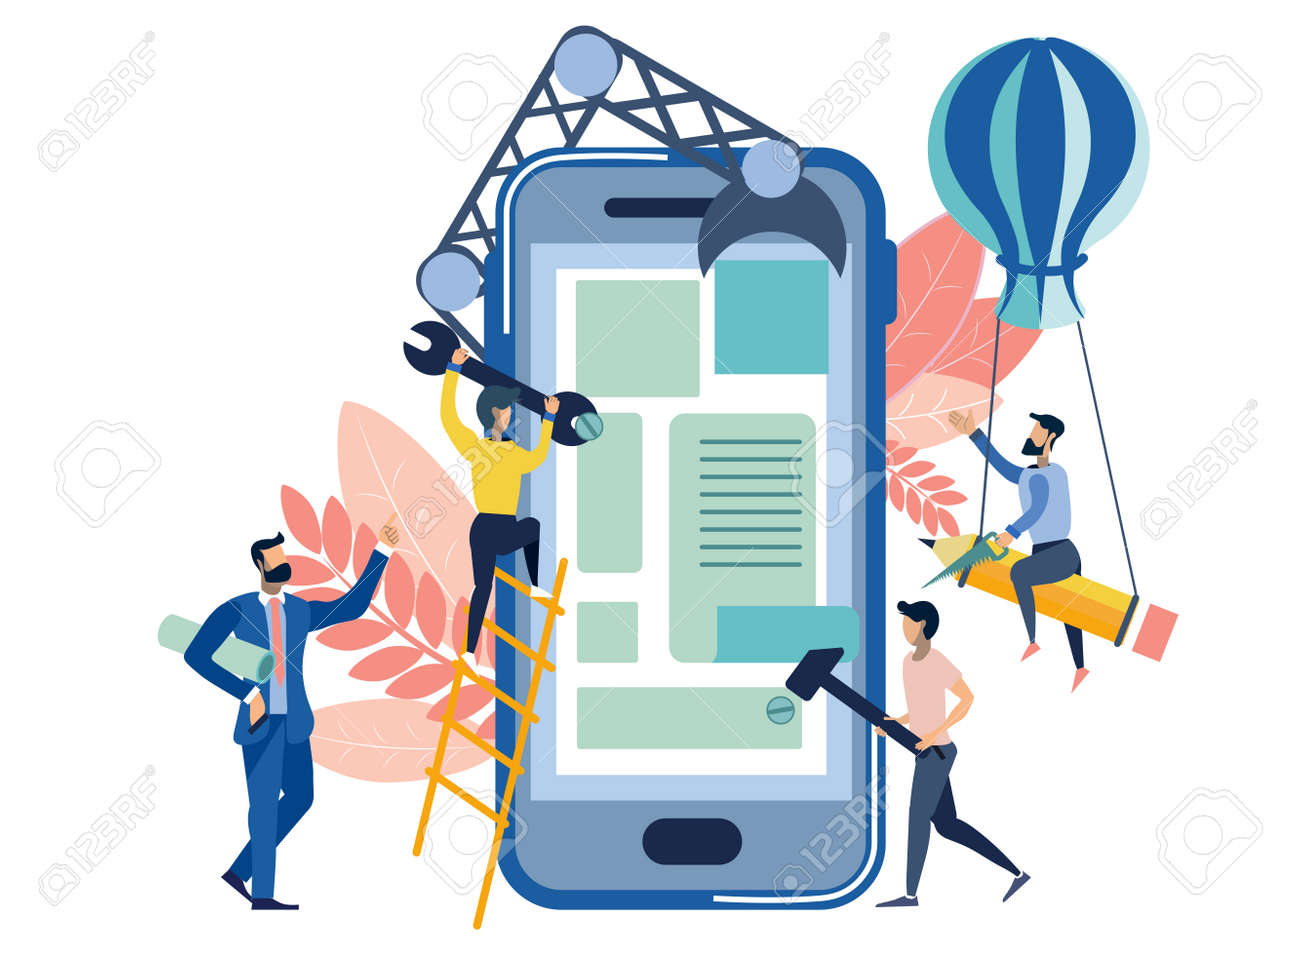 User interface of mobile application createion metaphor. Business work situation in flat style. Cartoon vector illustration - 124033284